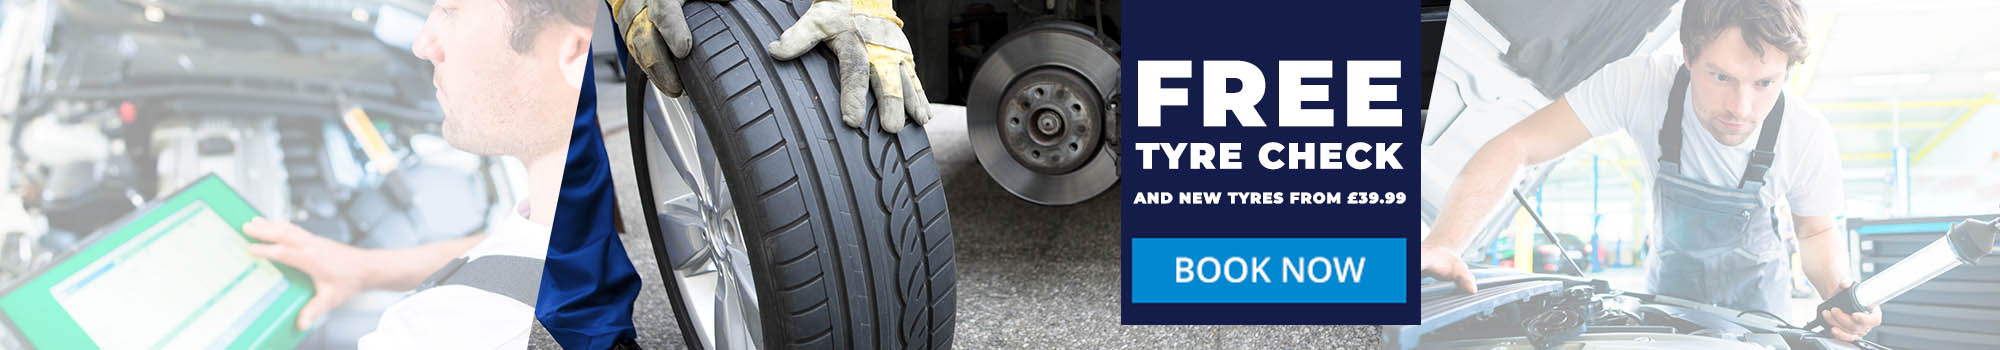 Cheap Tyres in Loughborough and Stapleford Nottingham